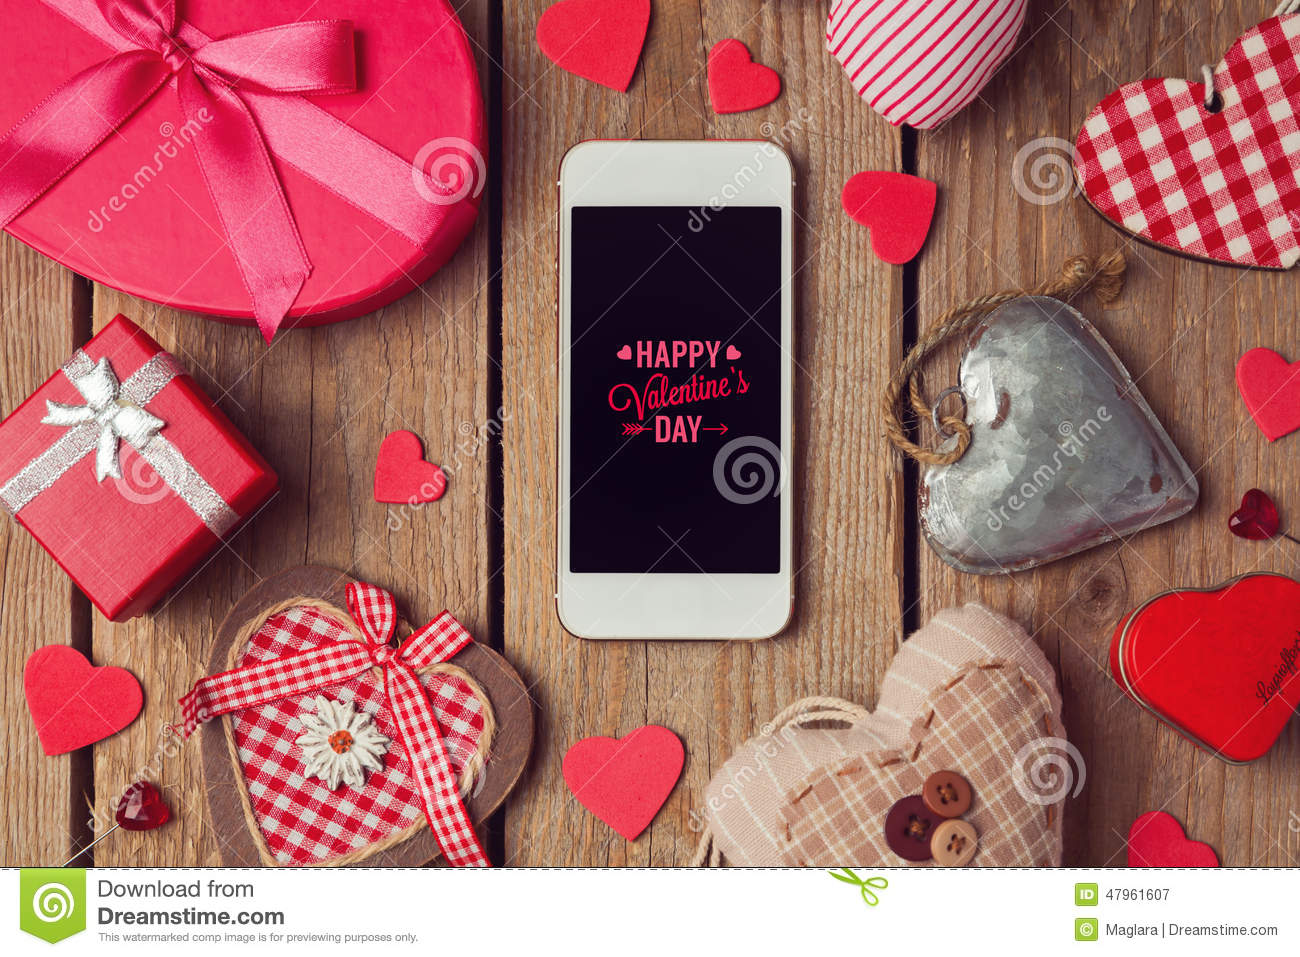 Smartphone mock up template for Valentine s day with heart shapes